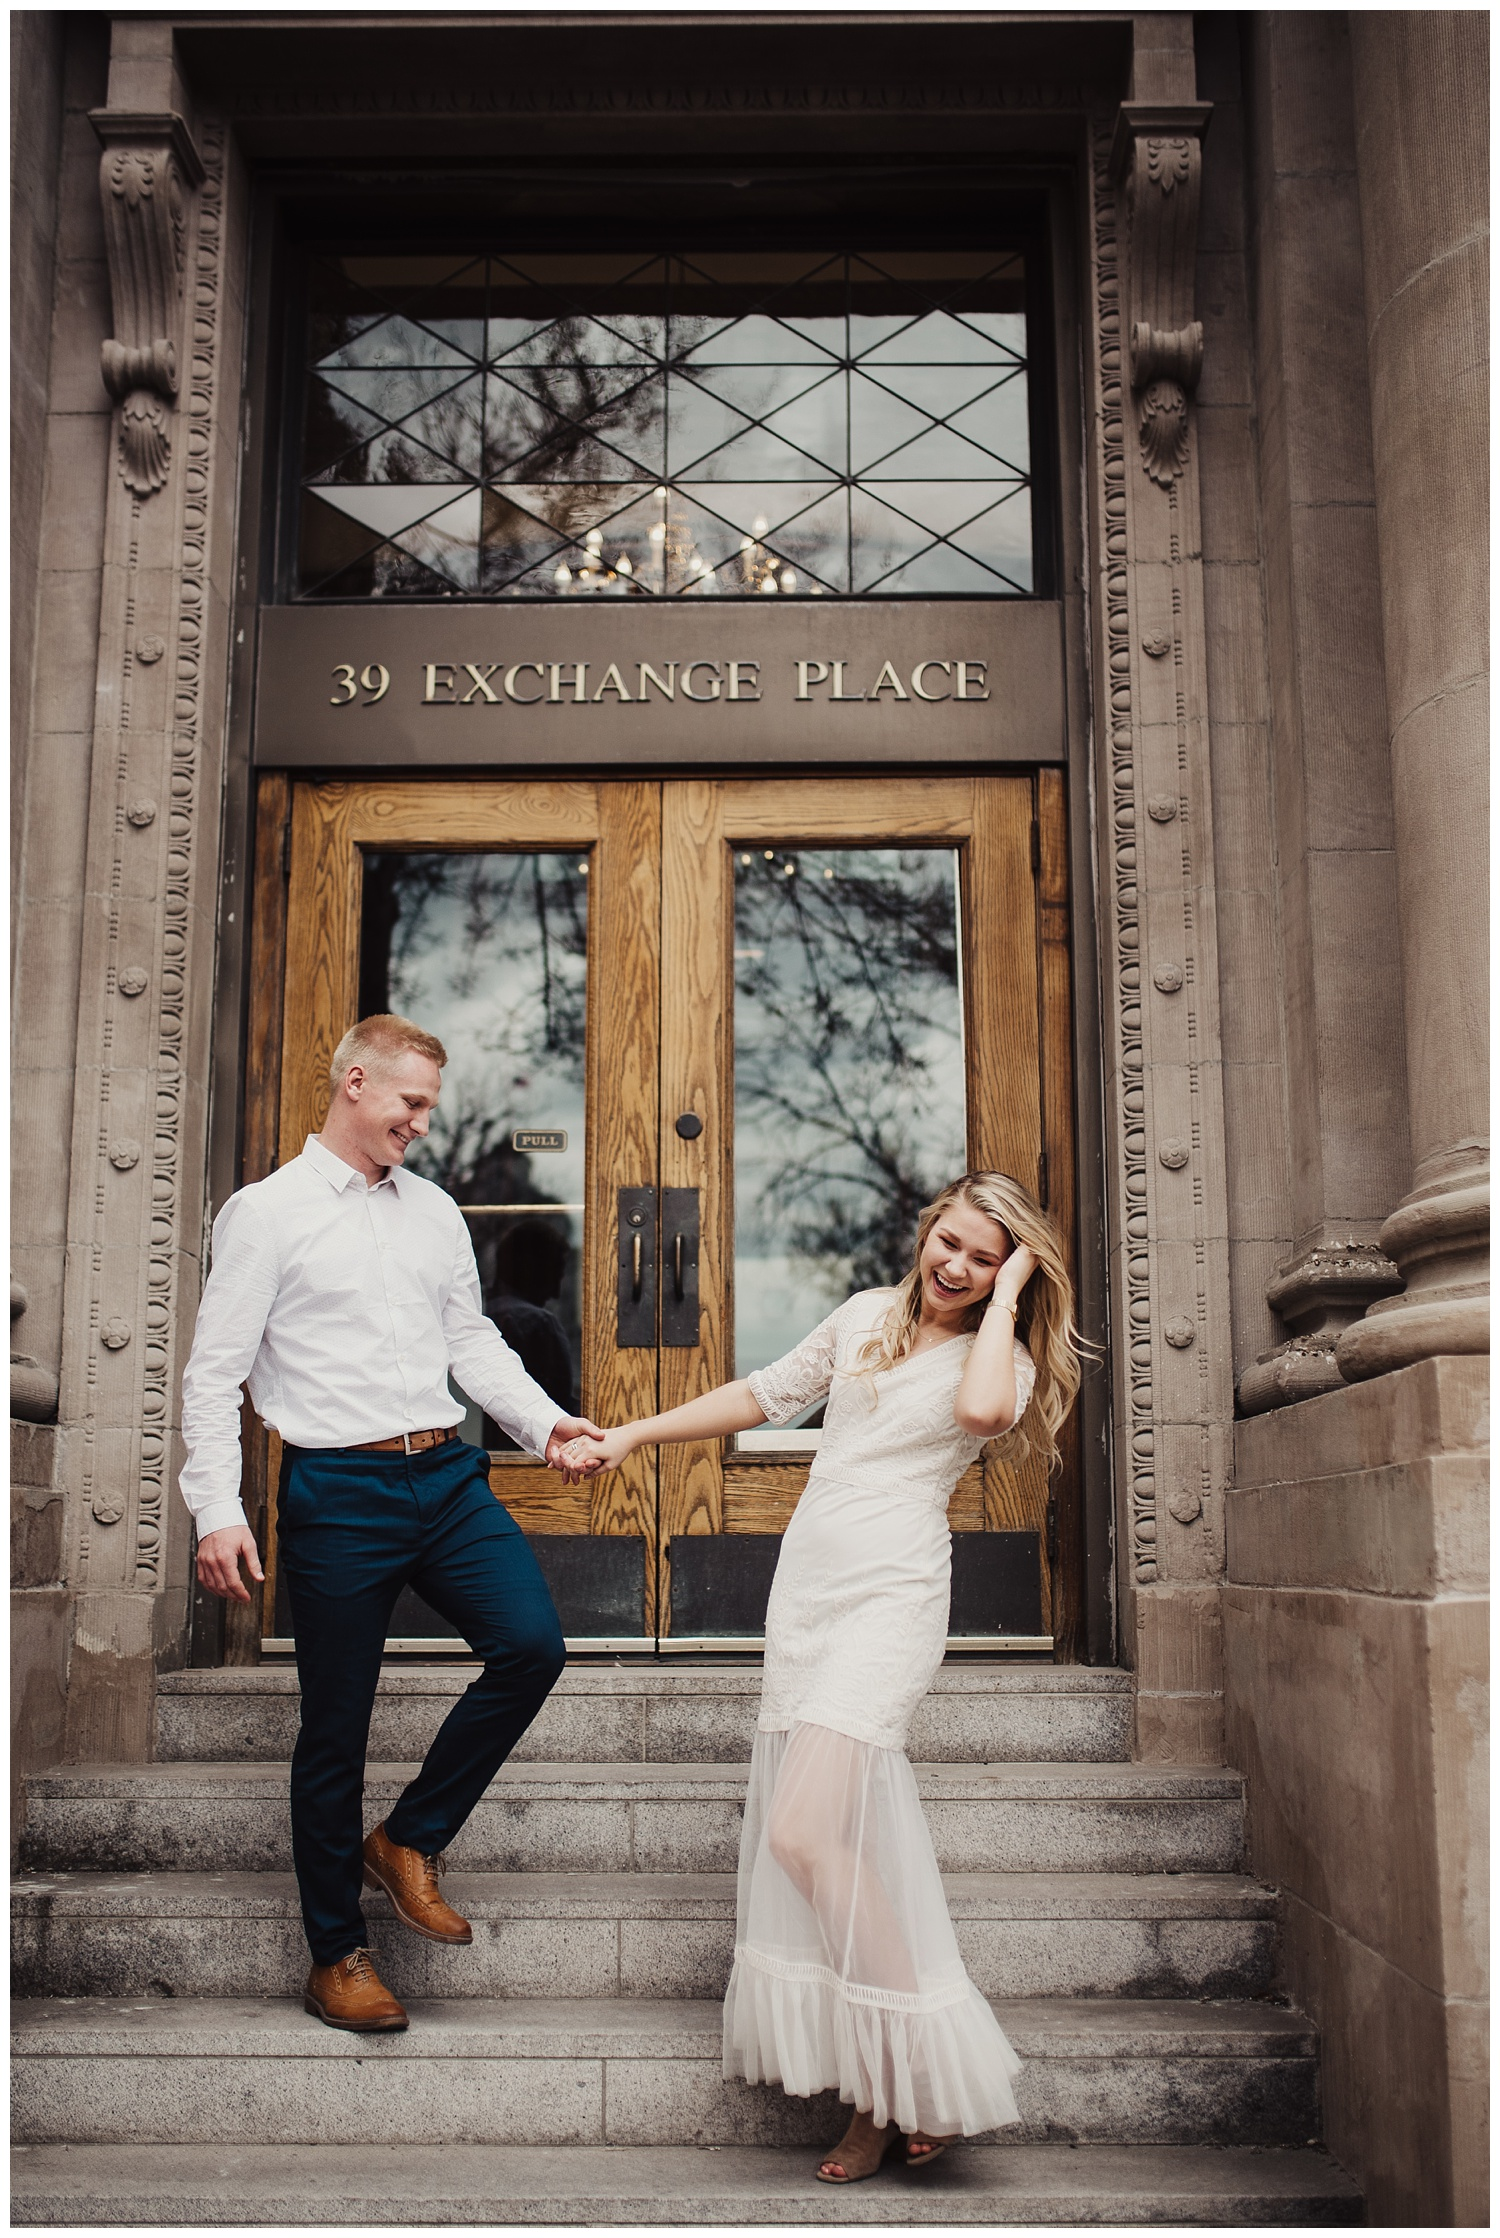 Exchange Place Engagement Session